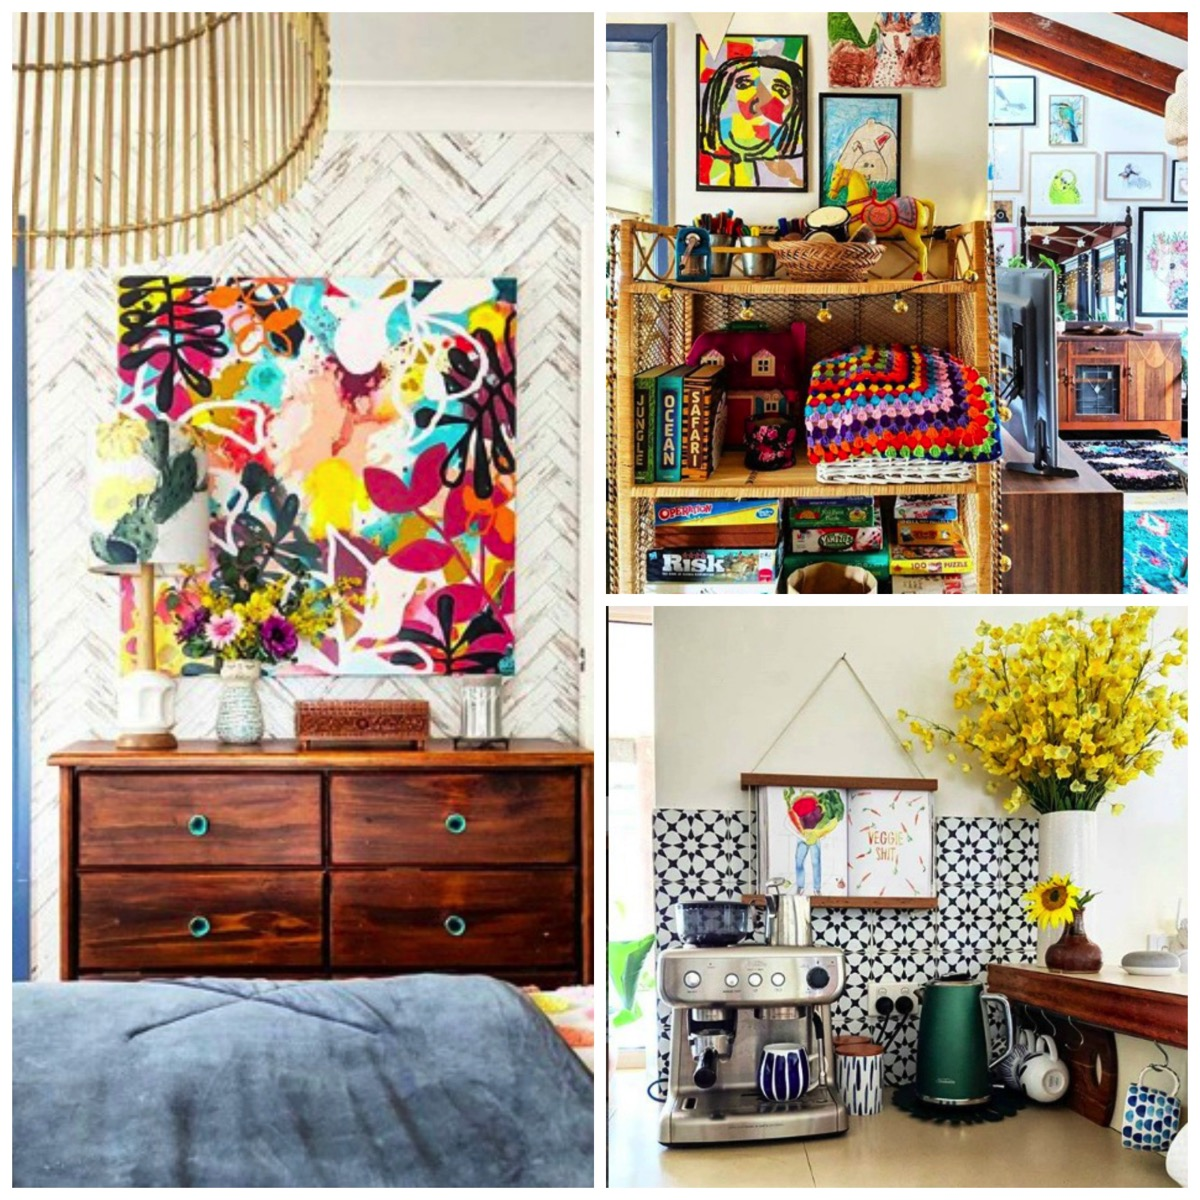 Home tour of hectic eclectic colorful home artistic unique dig and hang